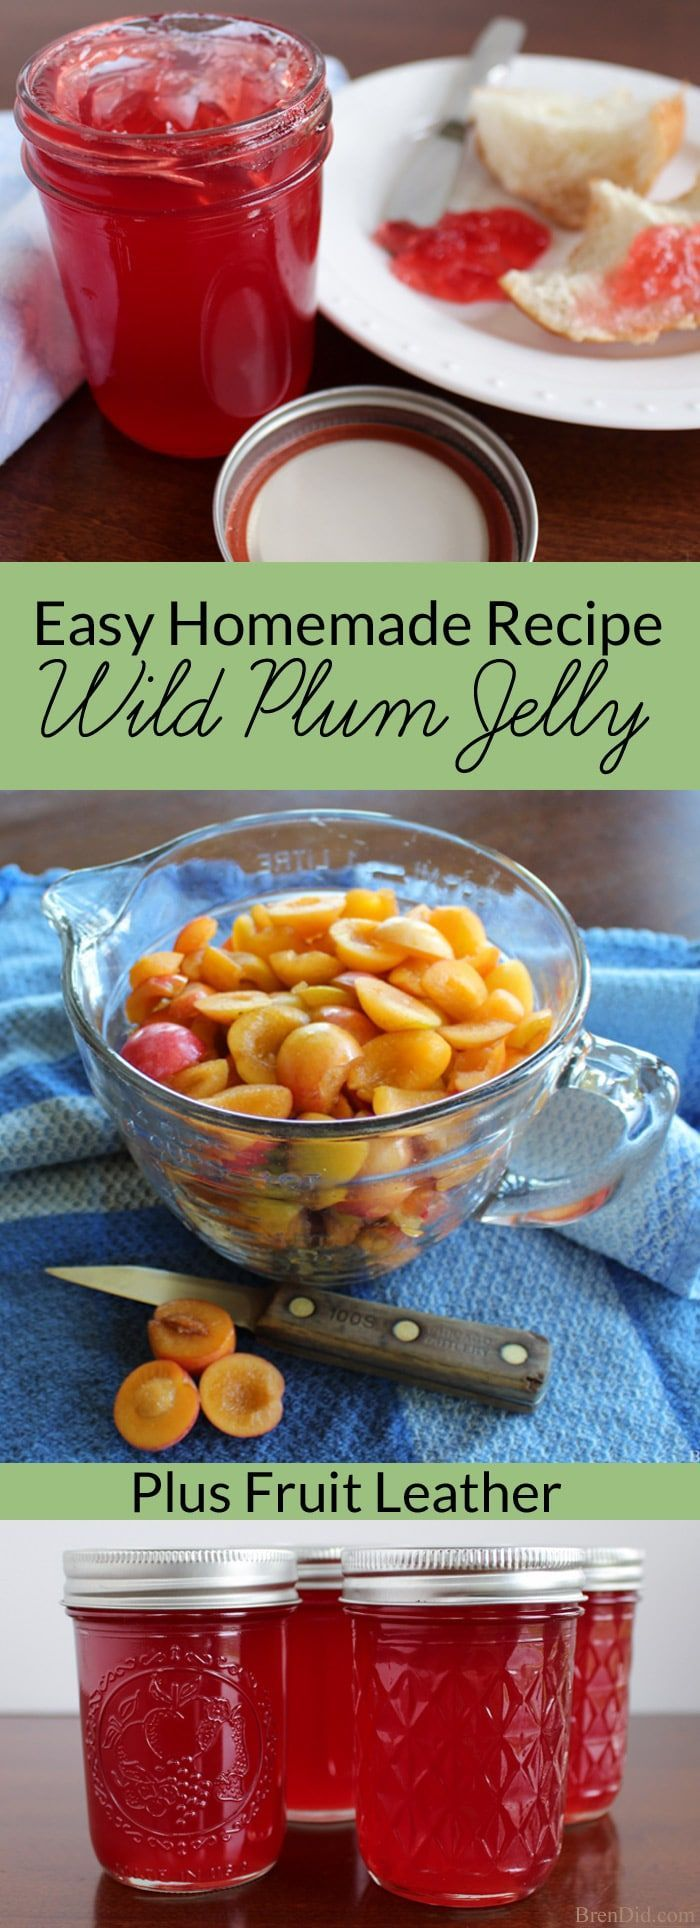 plum jelly recipe | easy homemade jelly | wild plum jelly | how to make jelly via @brendidblog